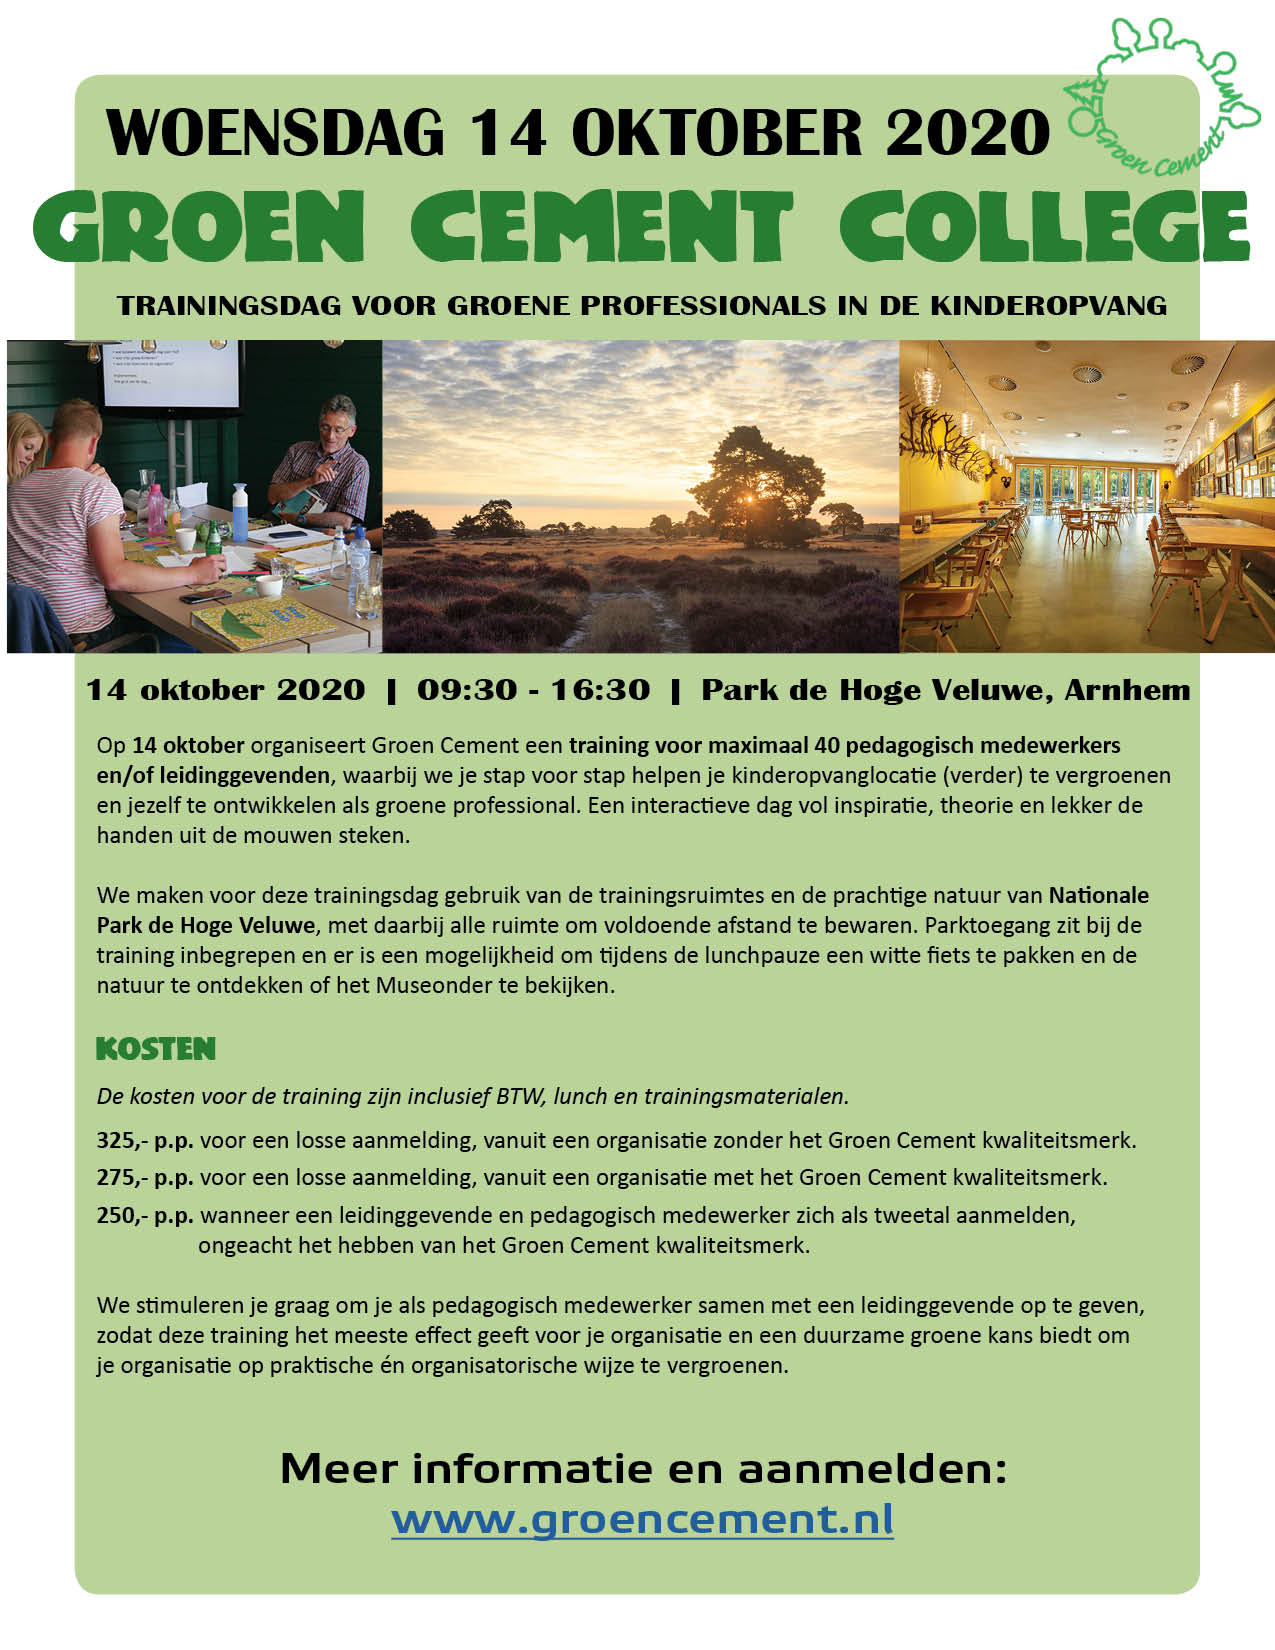 Groen Cement College 2020 lowres